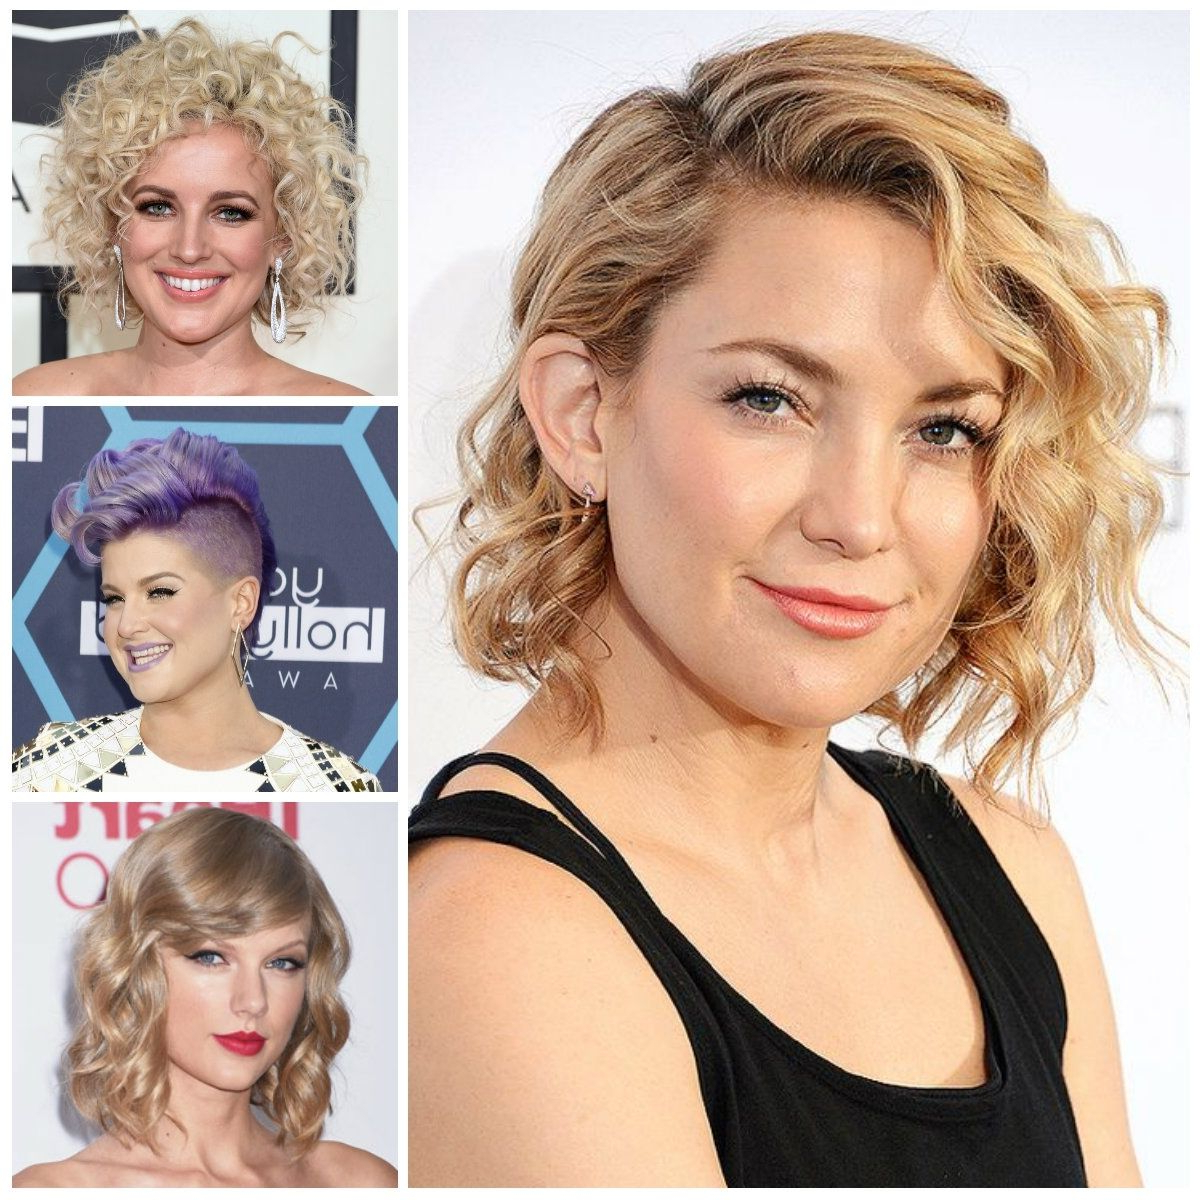 Image Result For Trendy Short Haircuts 2017 Female | Hairstyle Intended For Trendy Short Curly Hairstyles (View 7 of 25)